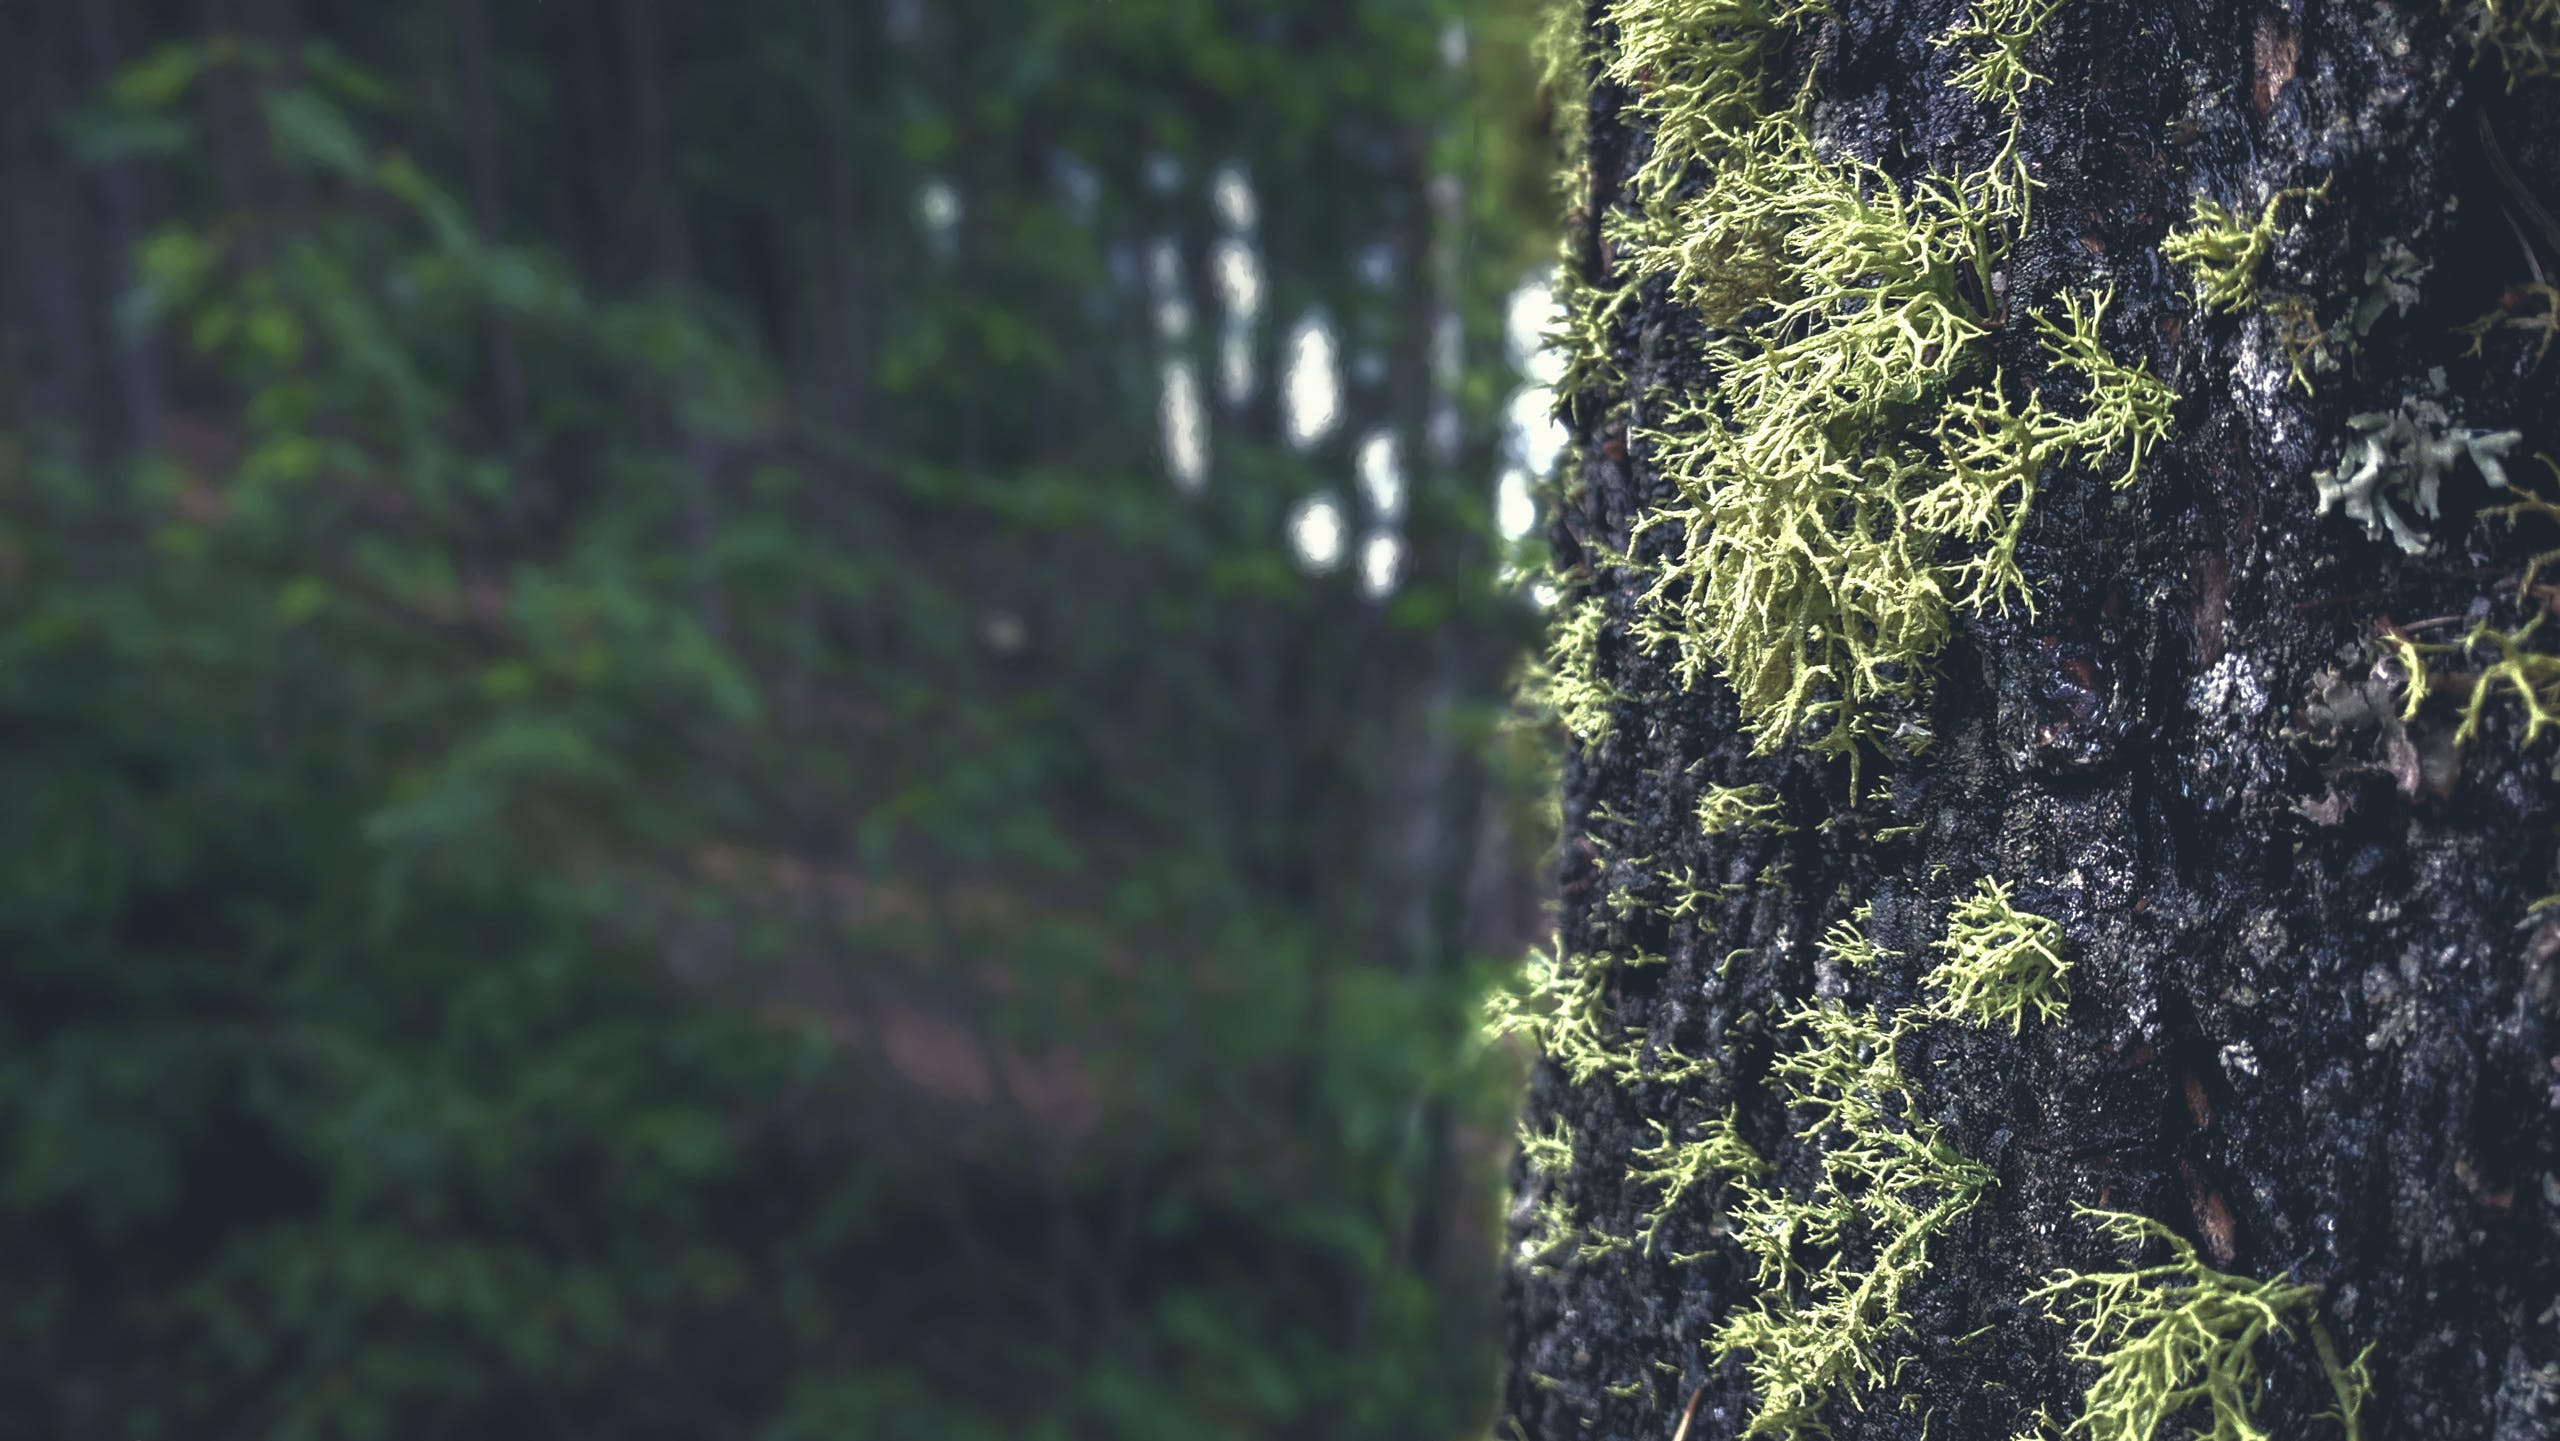 Free stock photo of nature, forest, trees, moss